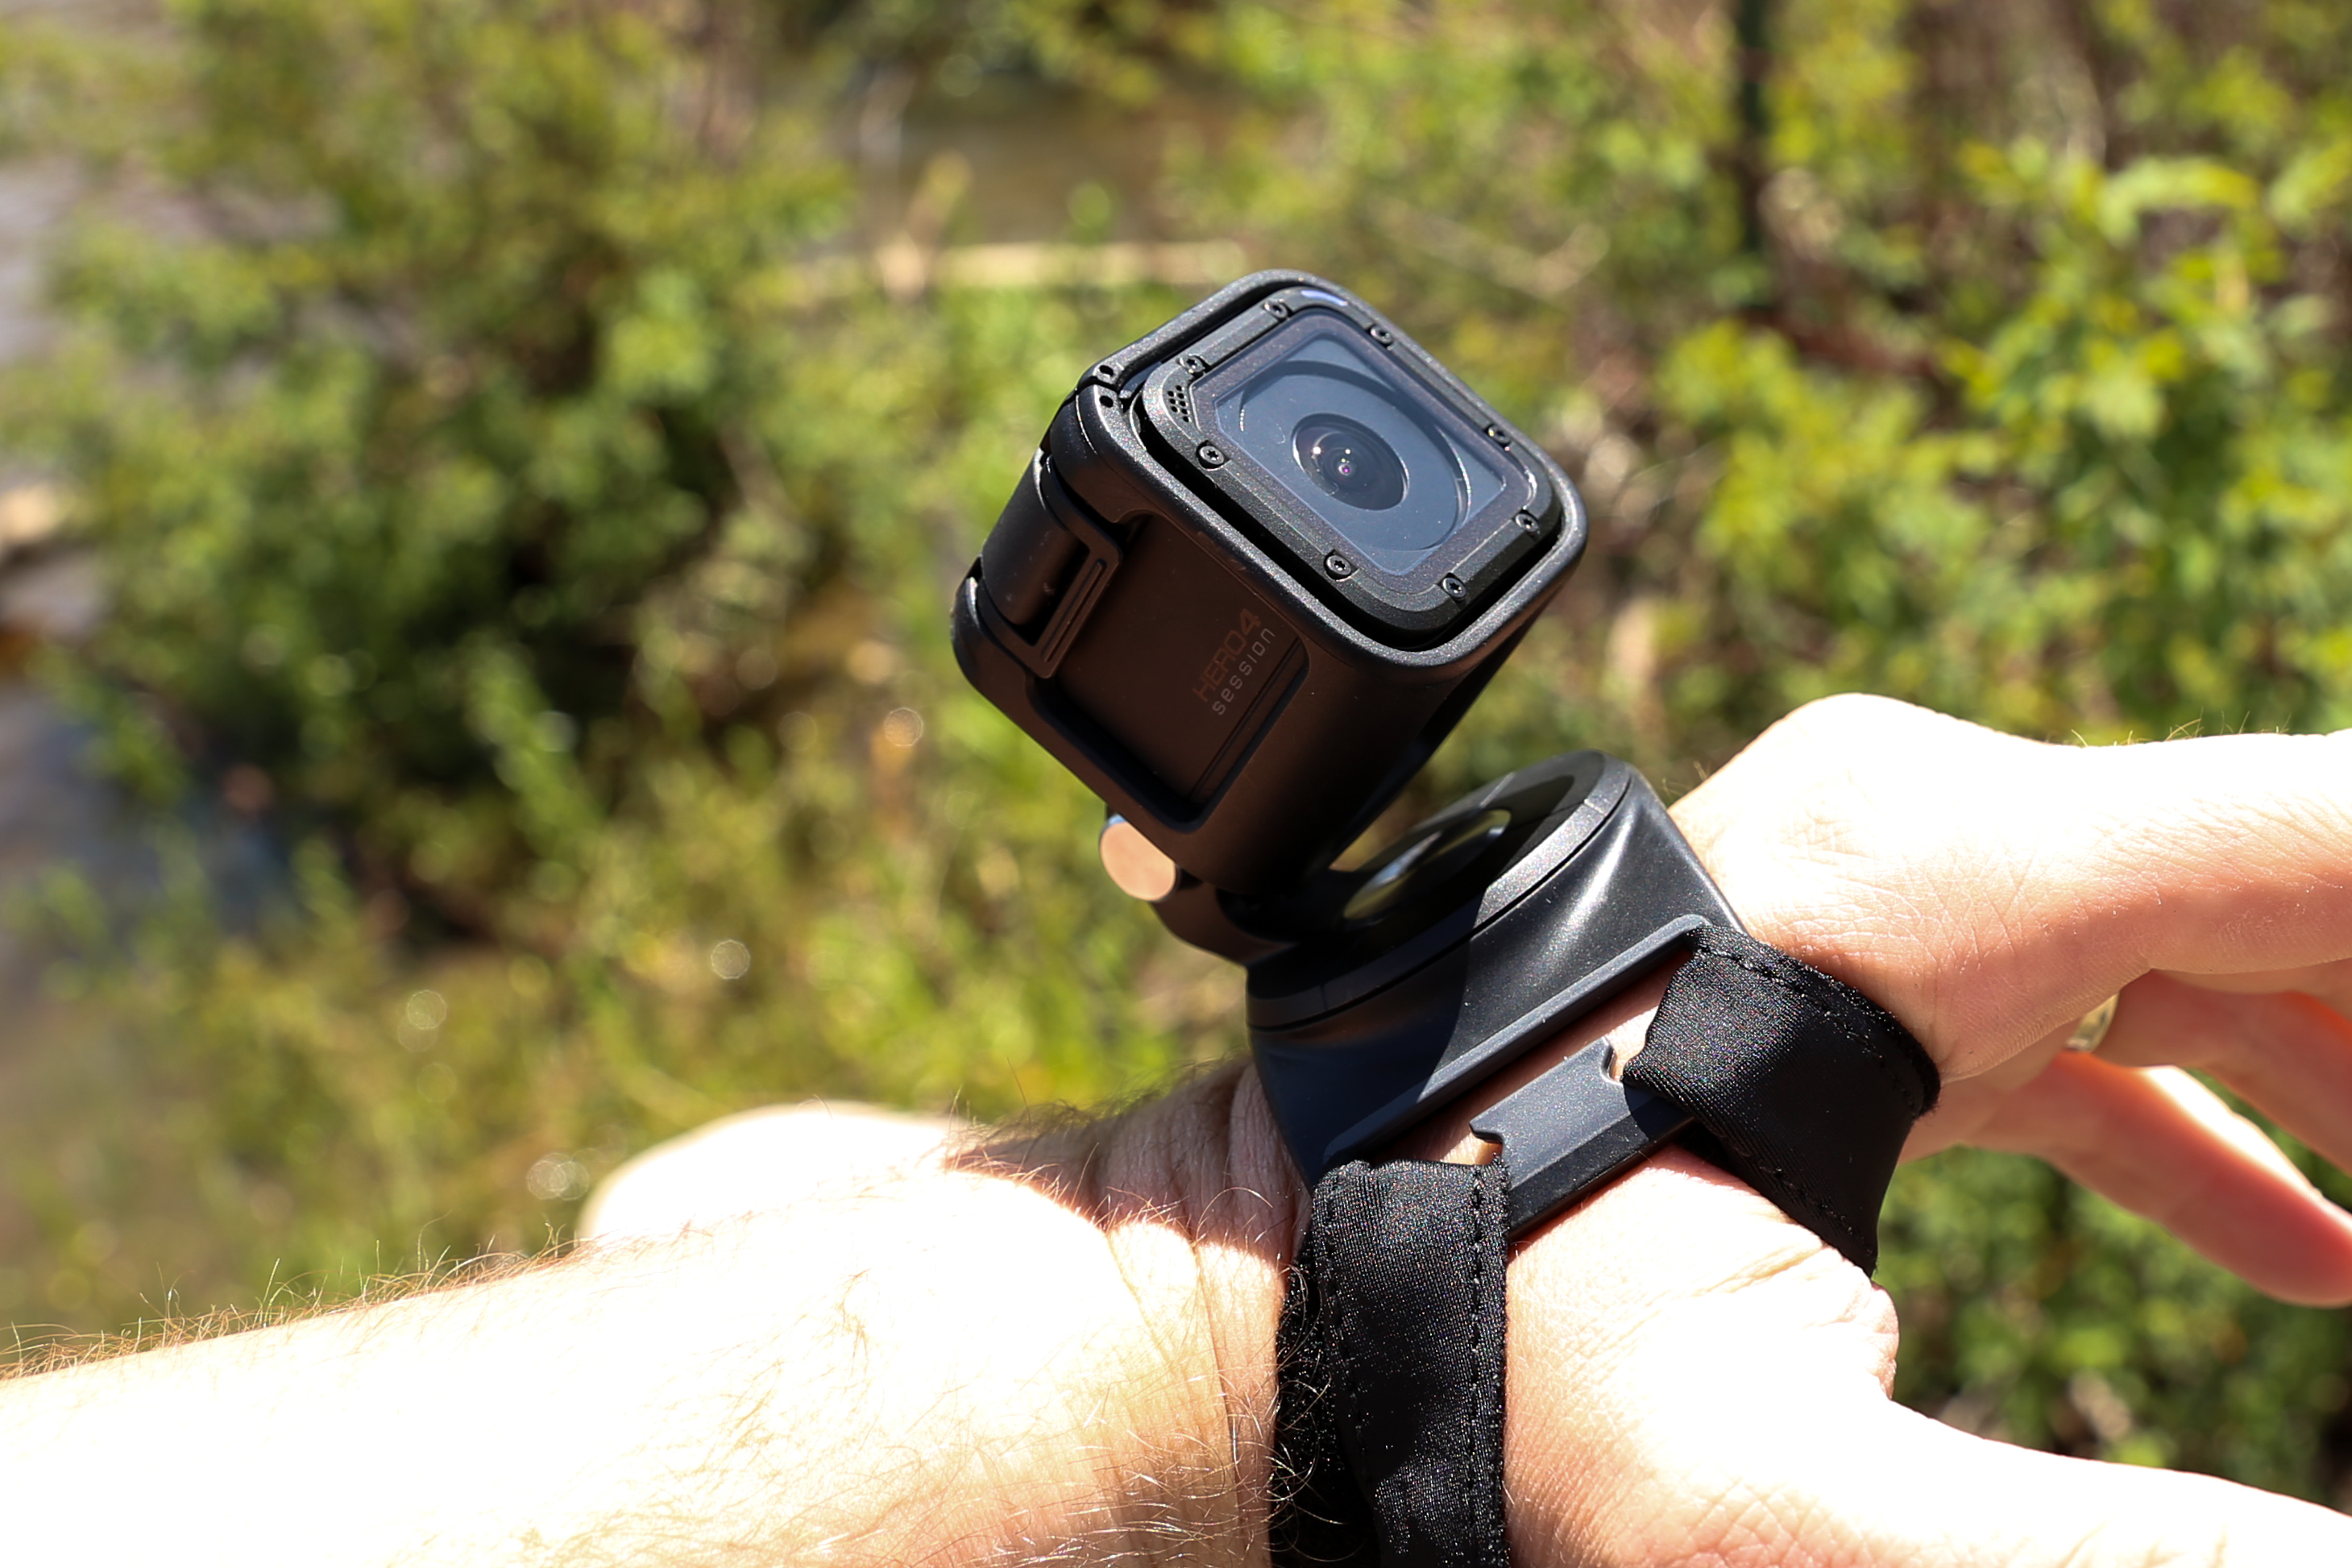 The GoPro Hero4 Session mounted to The Strap, GoPro's latest mount designed to work with the Session and all other GoPro cameras.